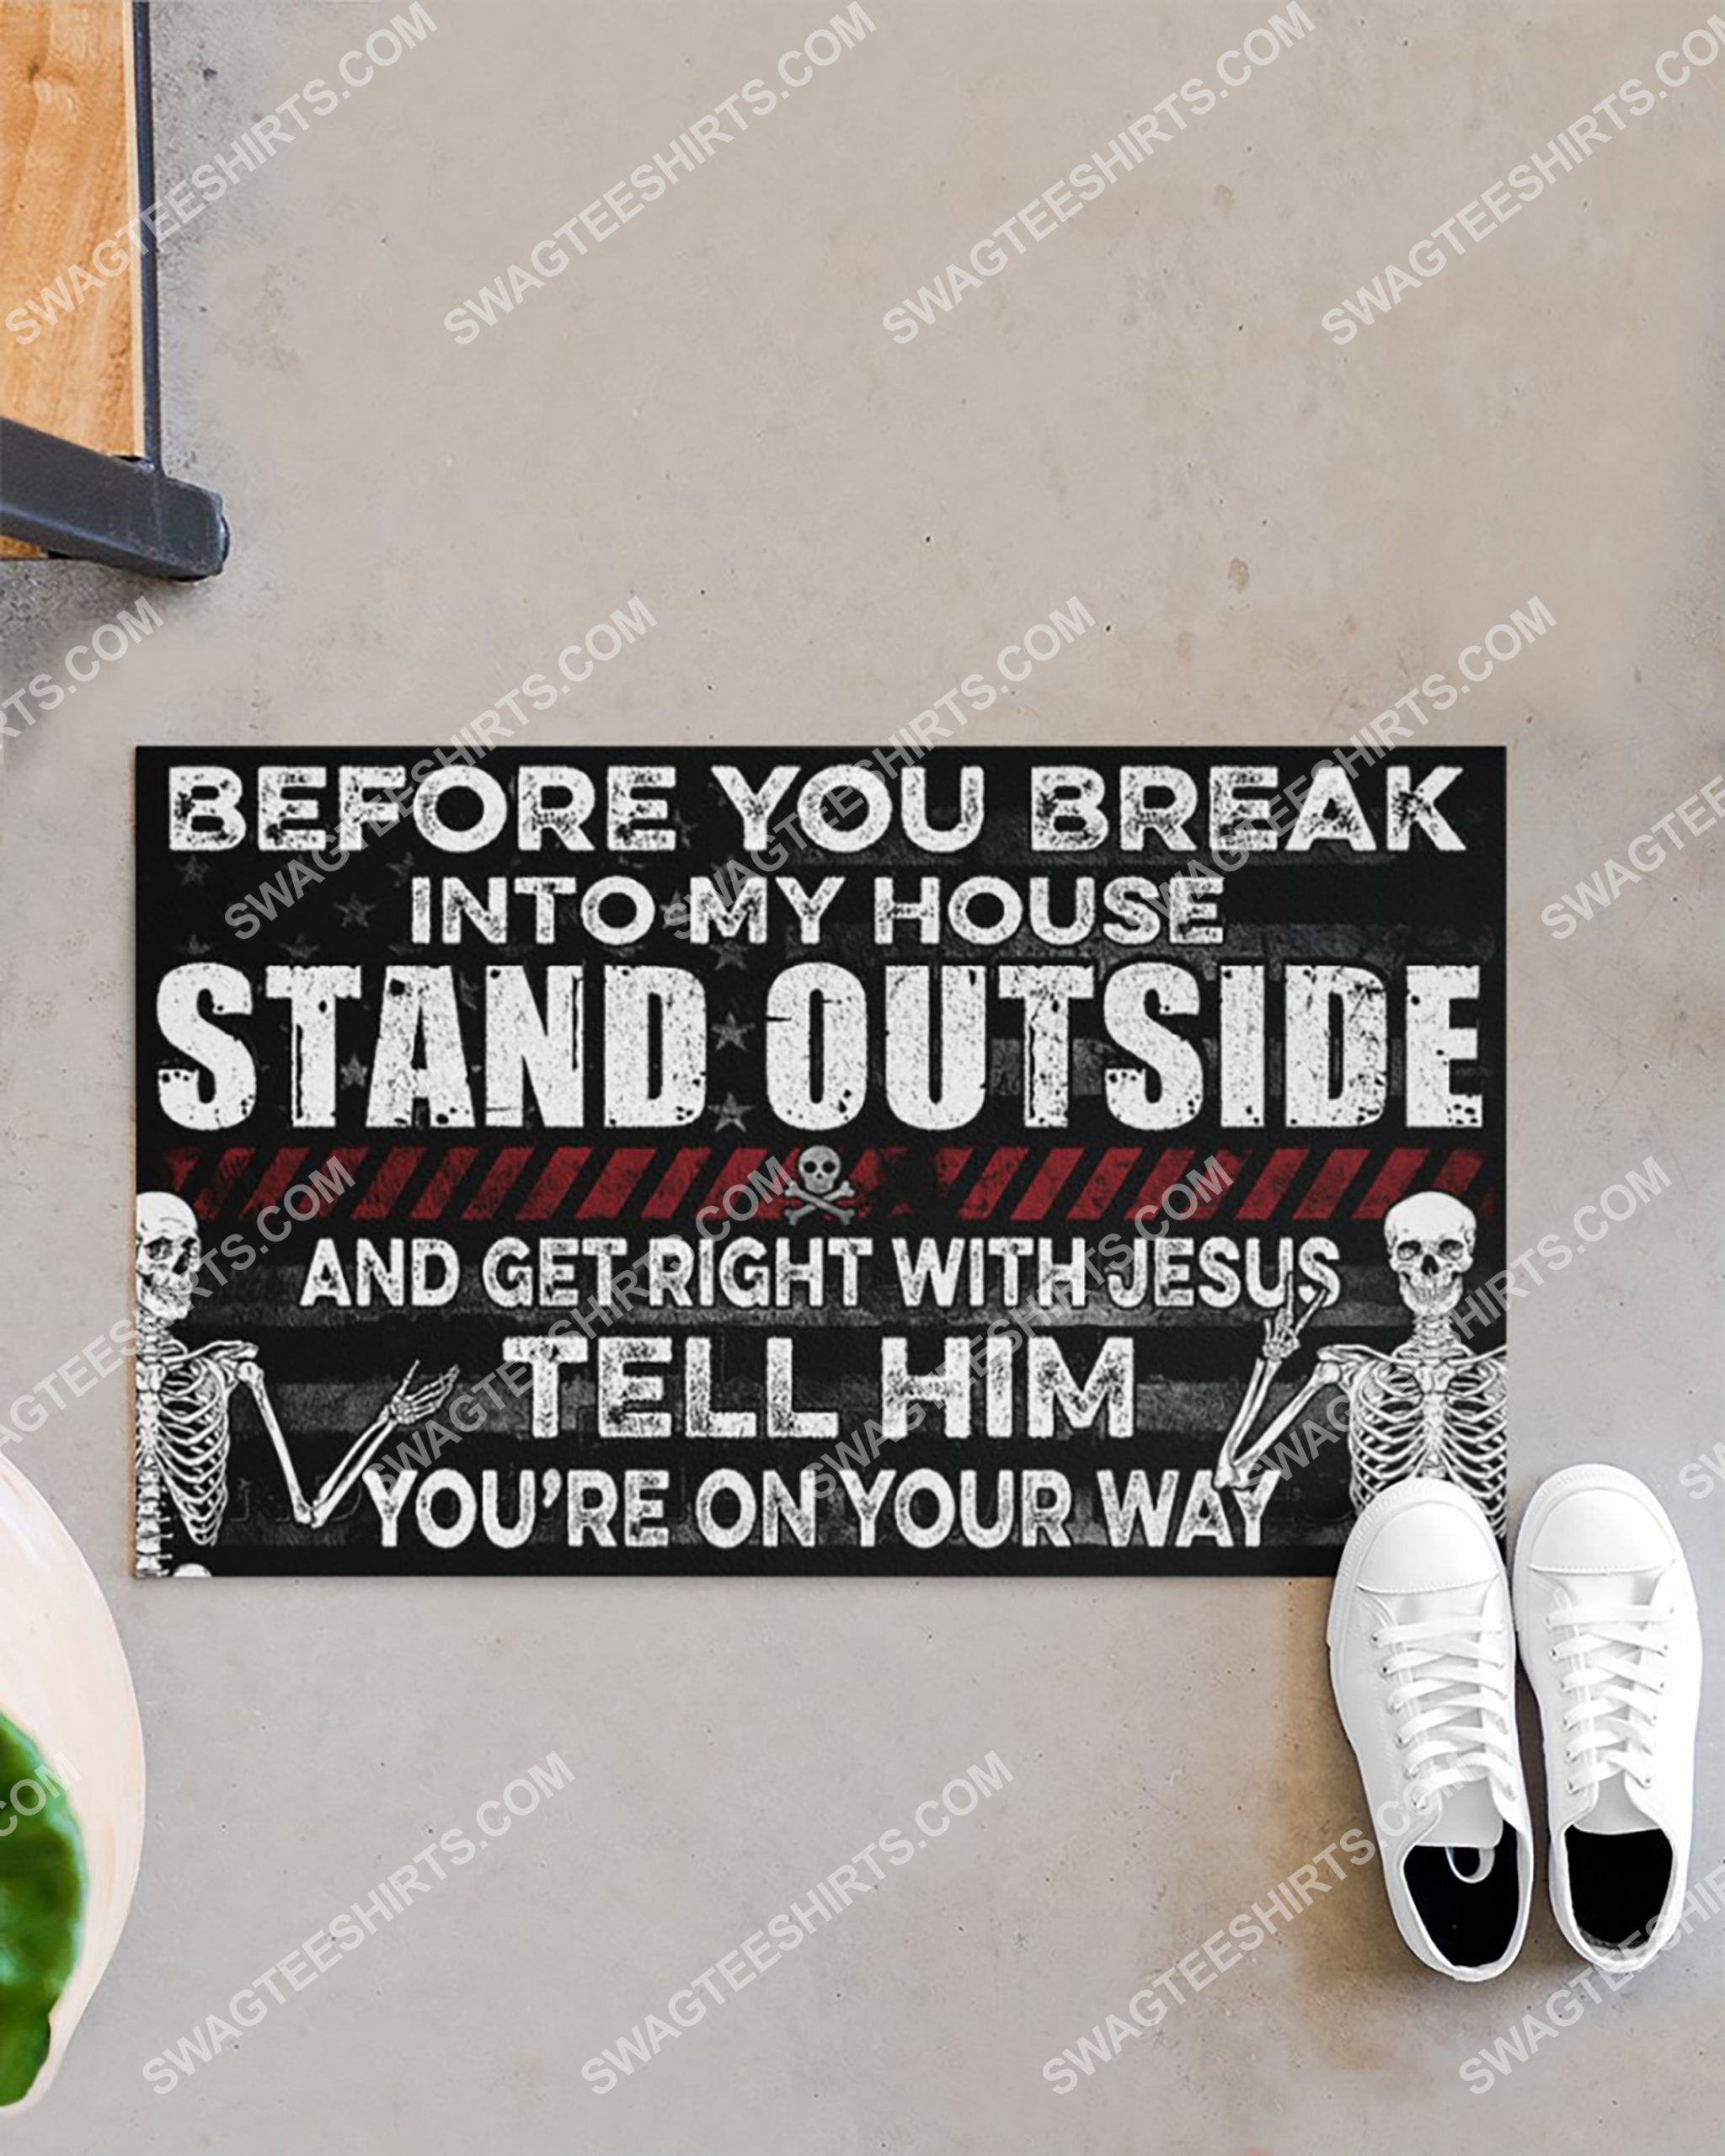 skull before you break into my house stand outside and get right with Jesus doormat 3(1)